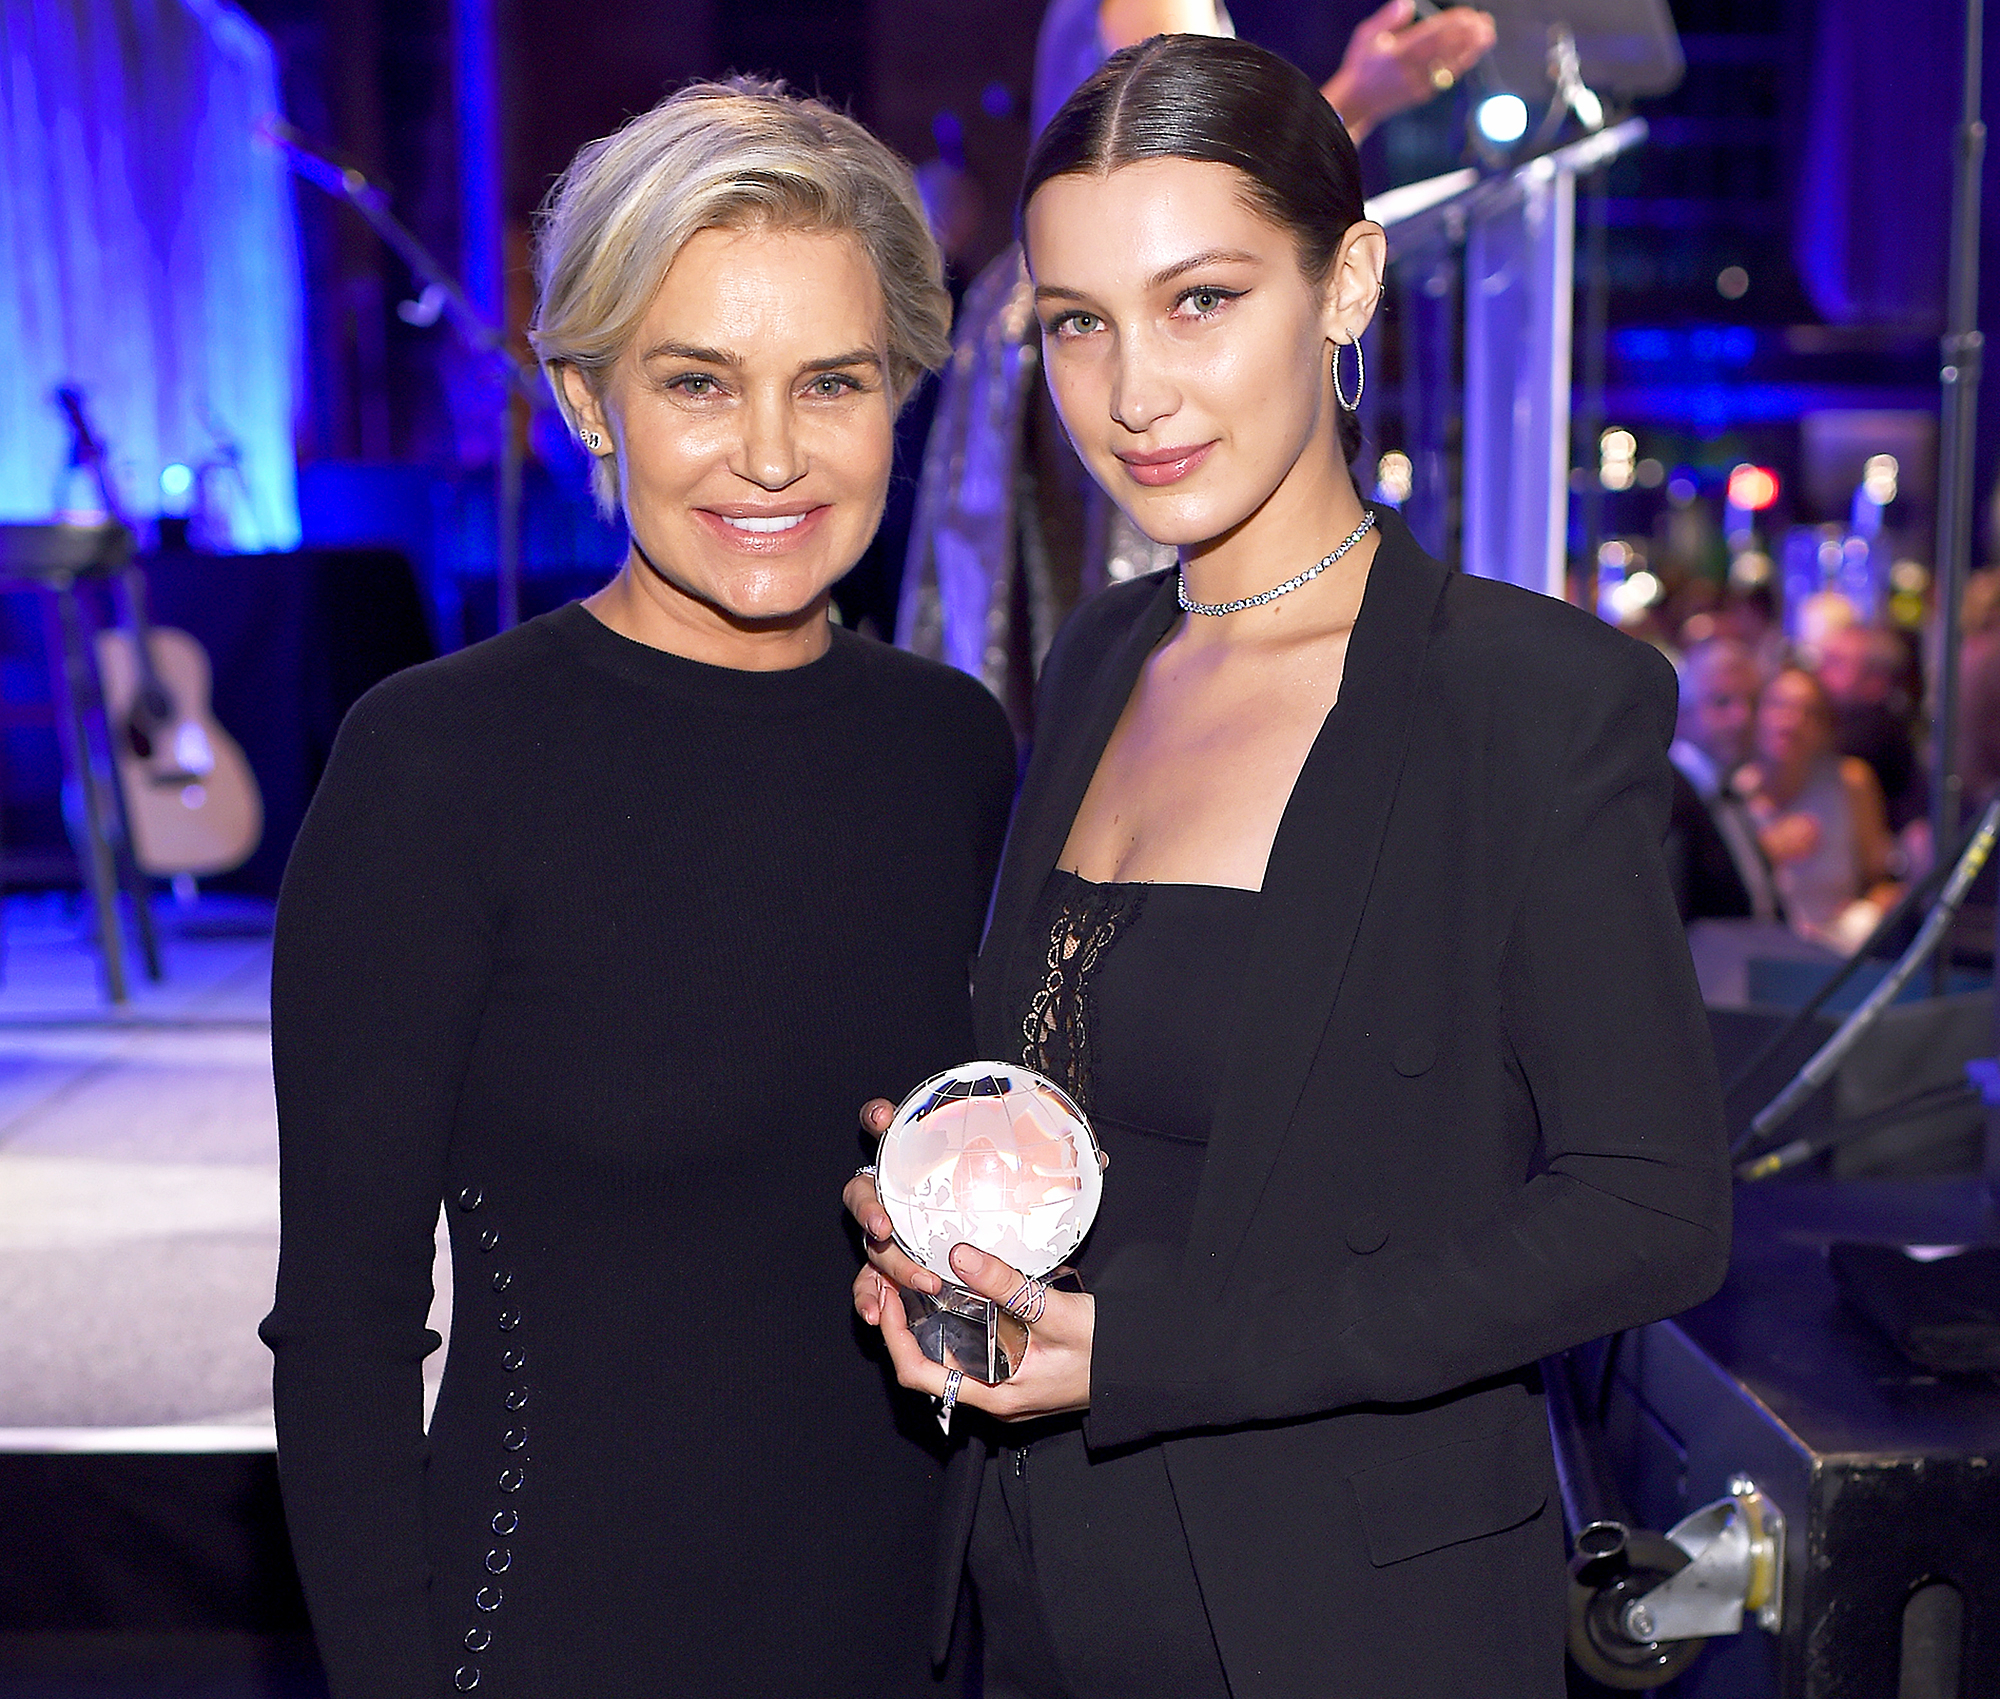 Bella Hadid and Yolanda